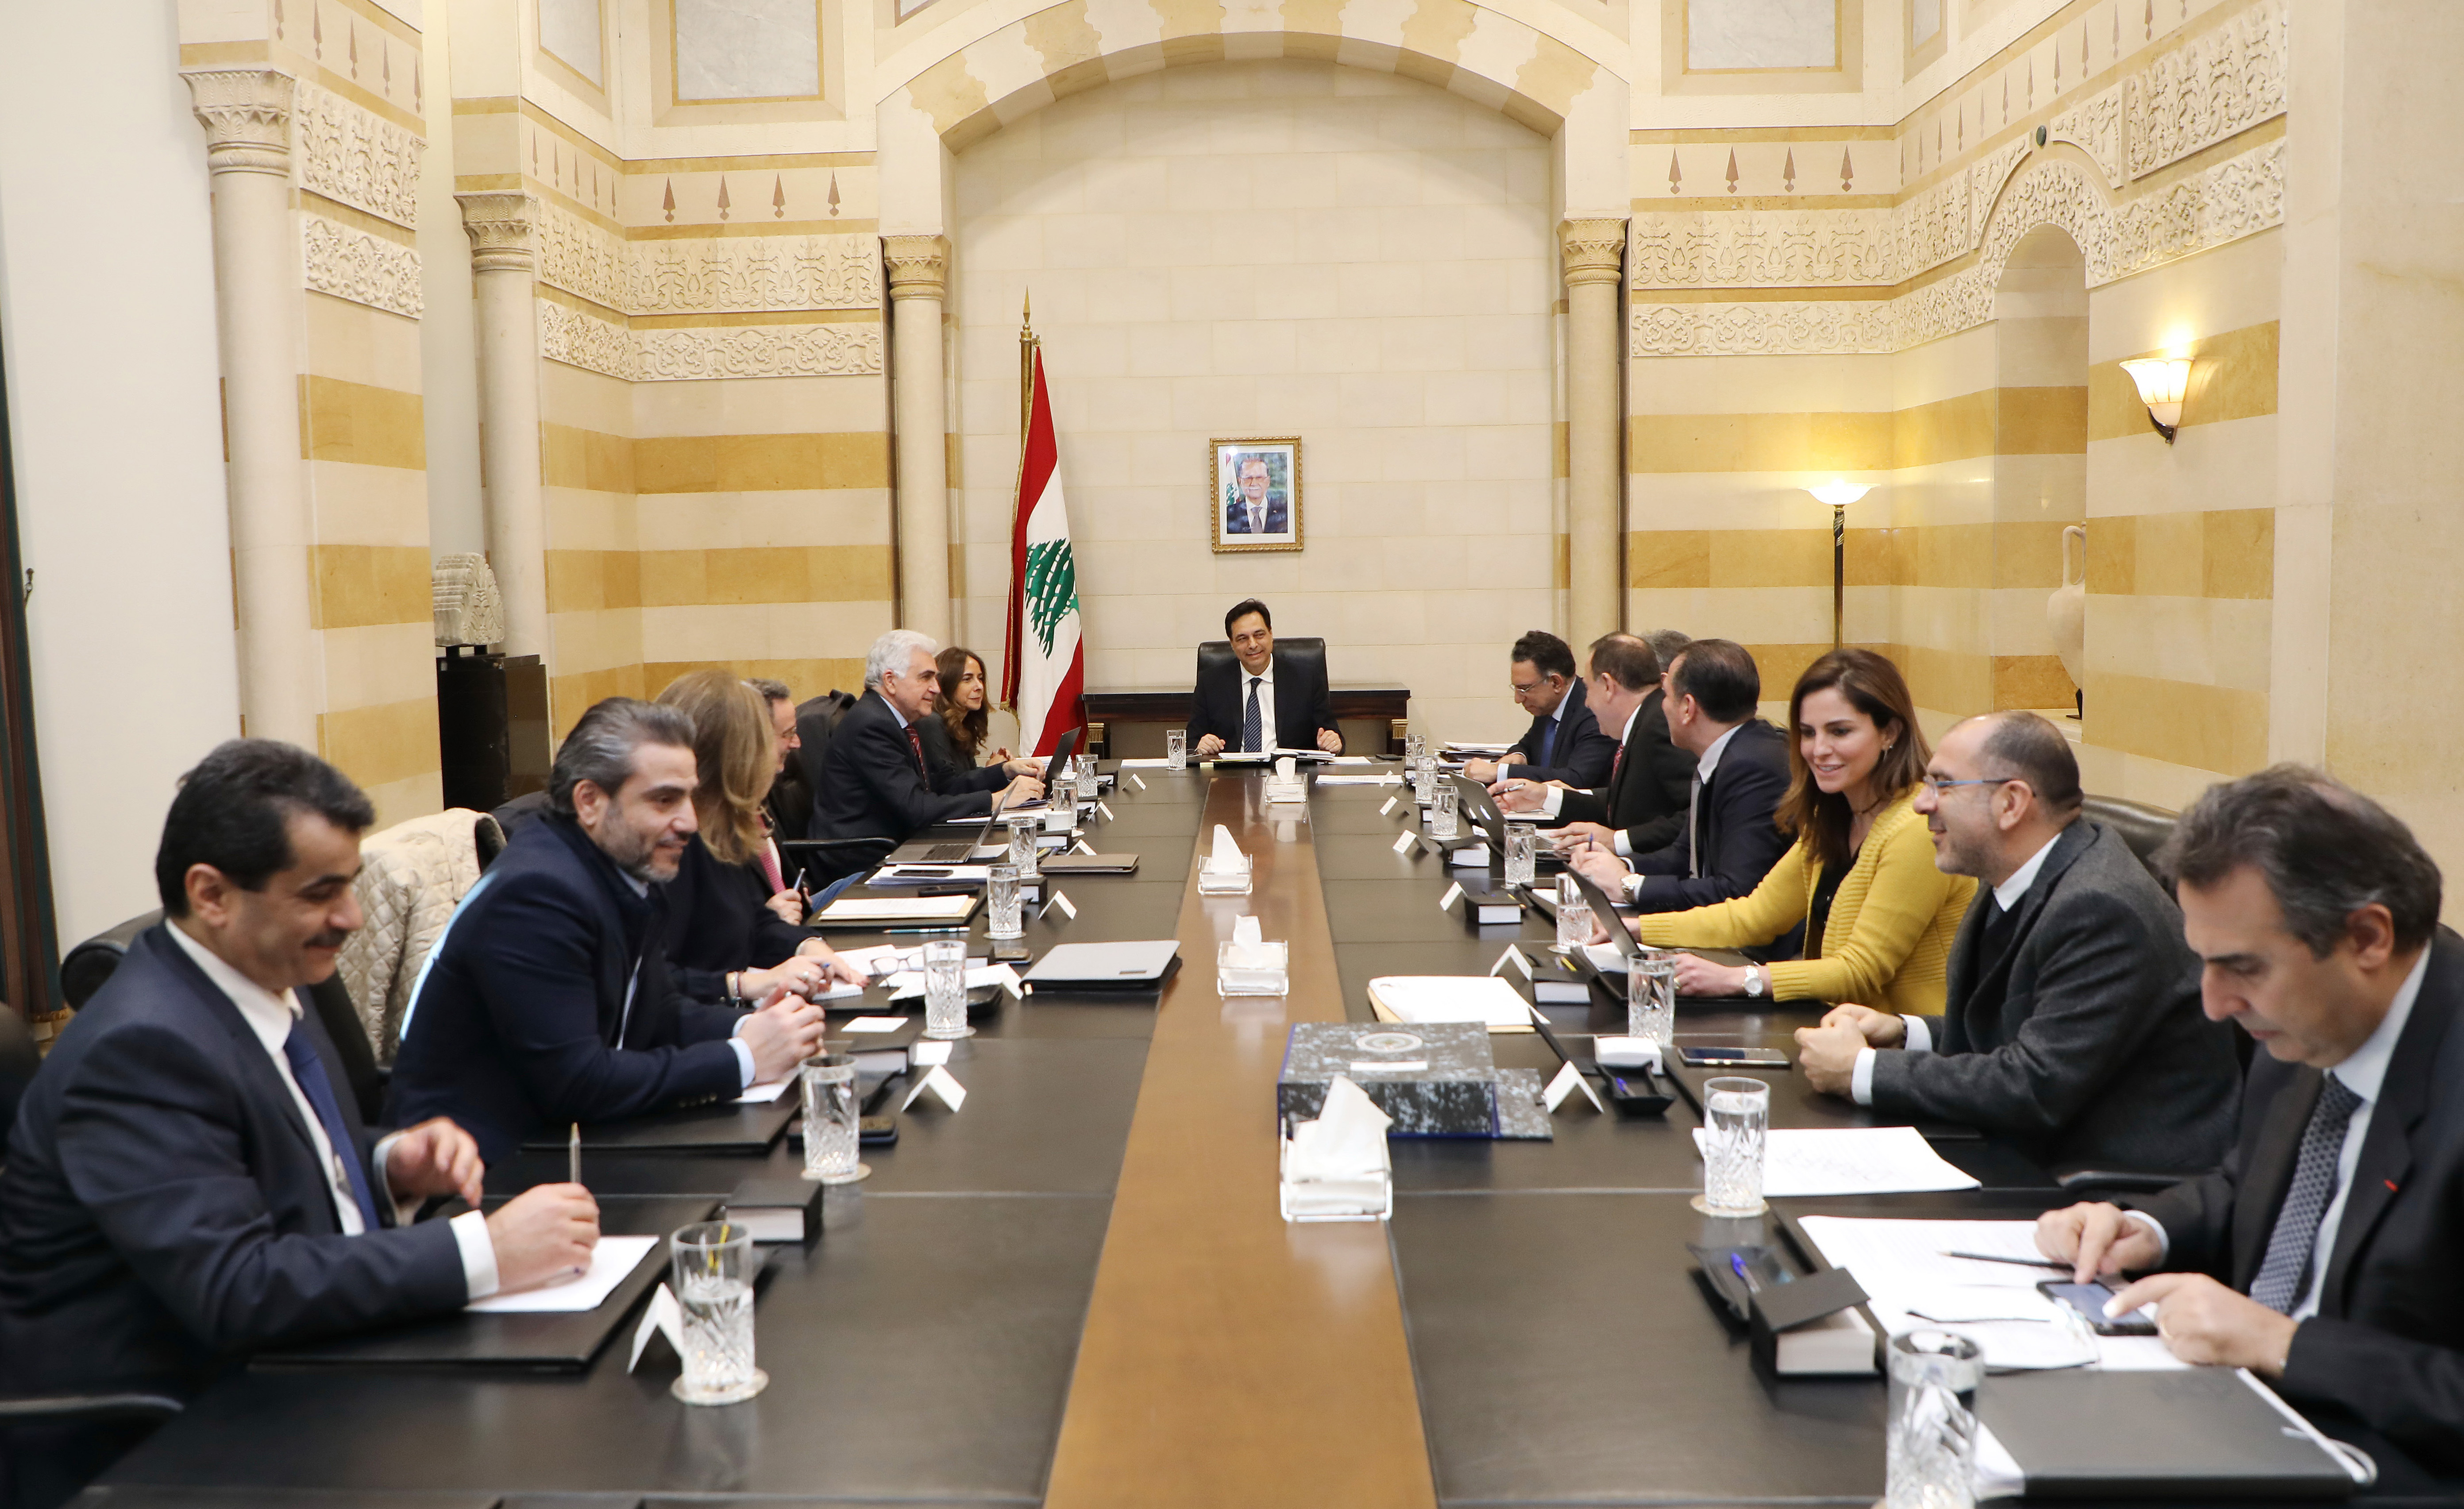 Pr Minister Hassan Diab Heading a Ministerial Council 2